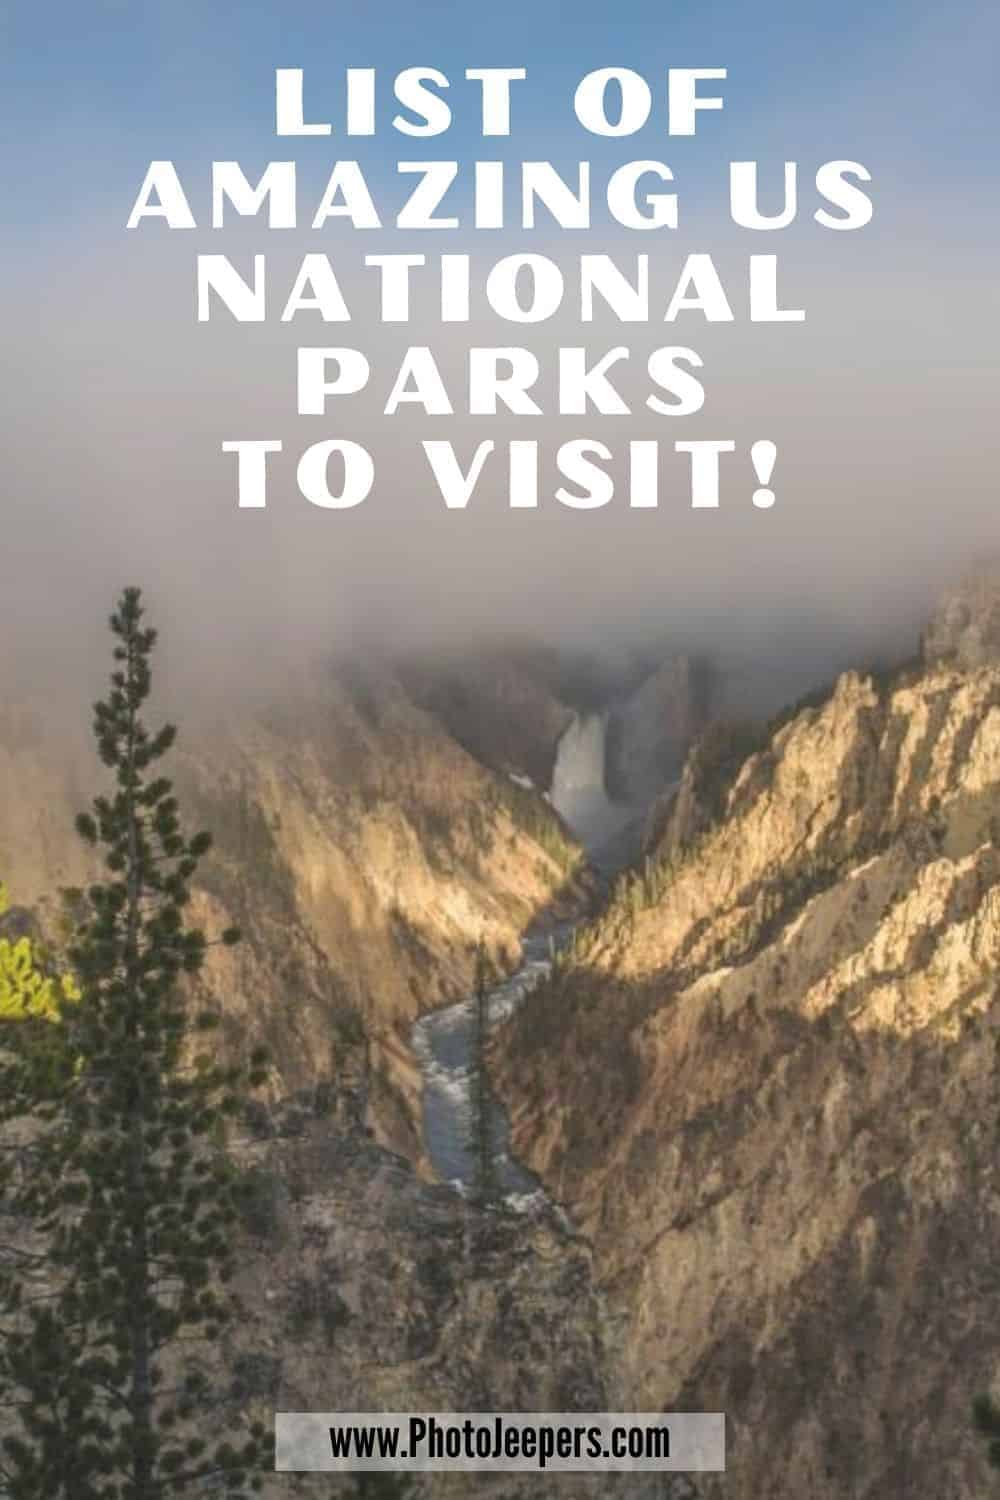 List of Amazing US National Parks to Visit